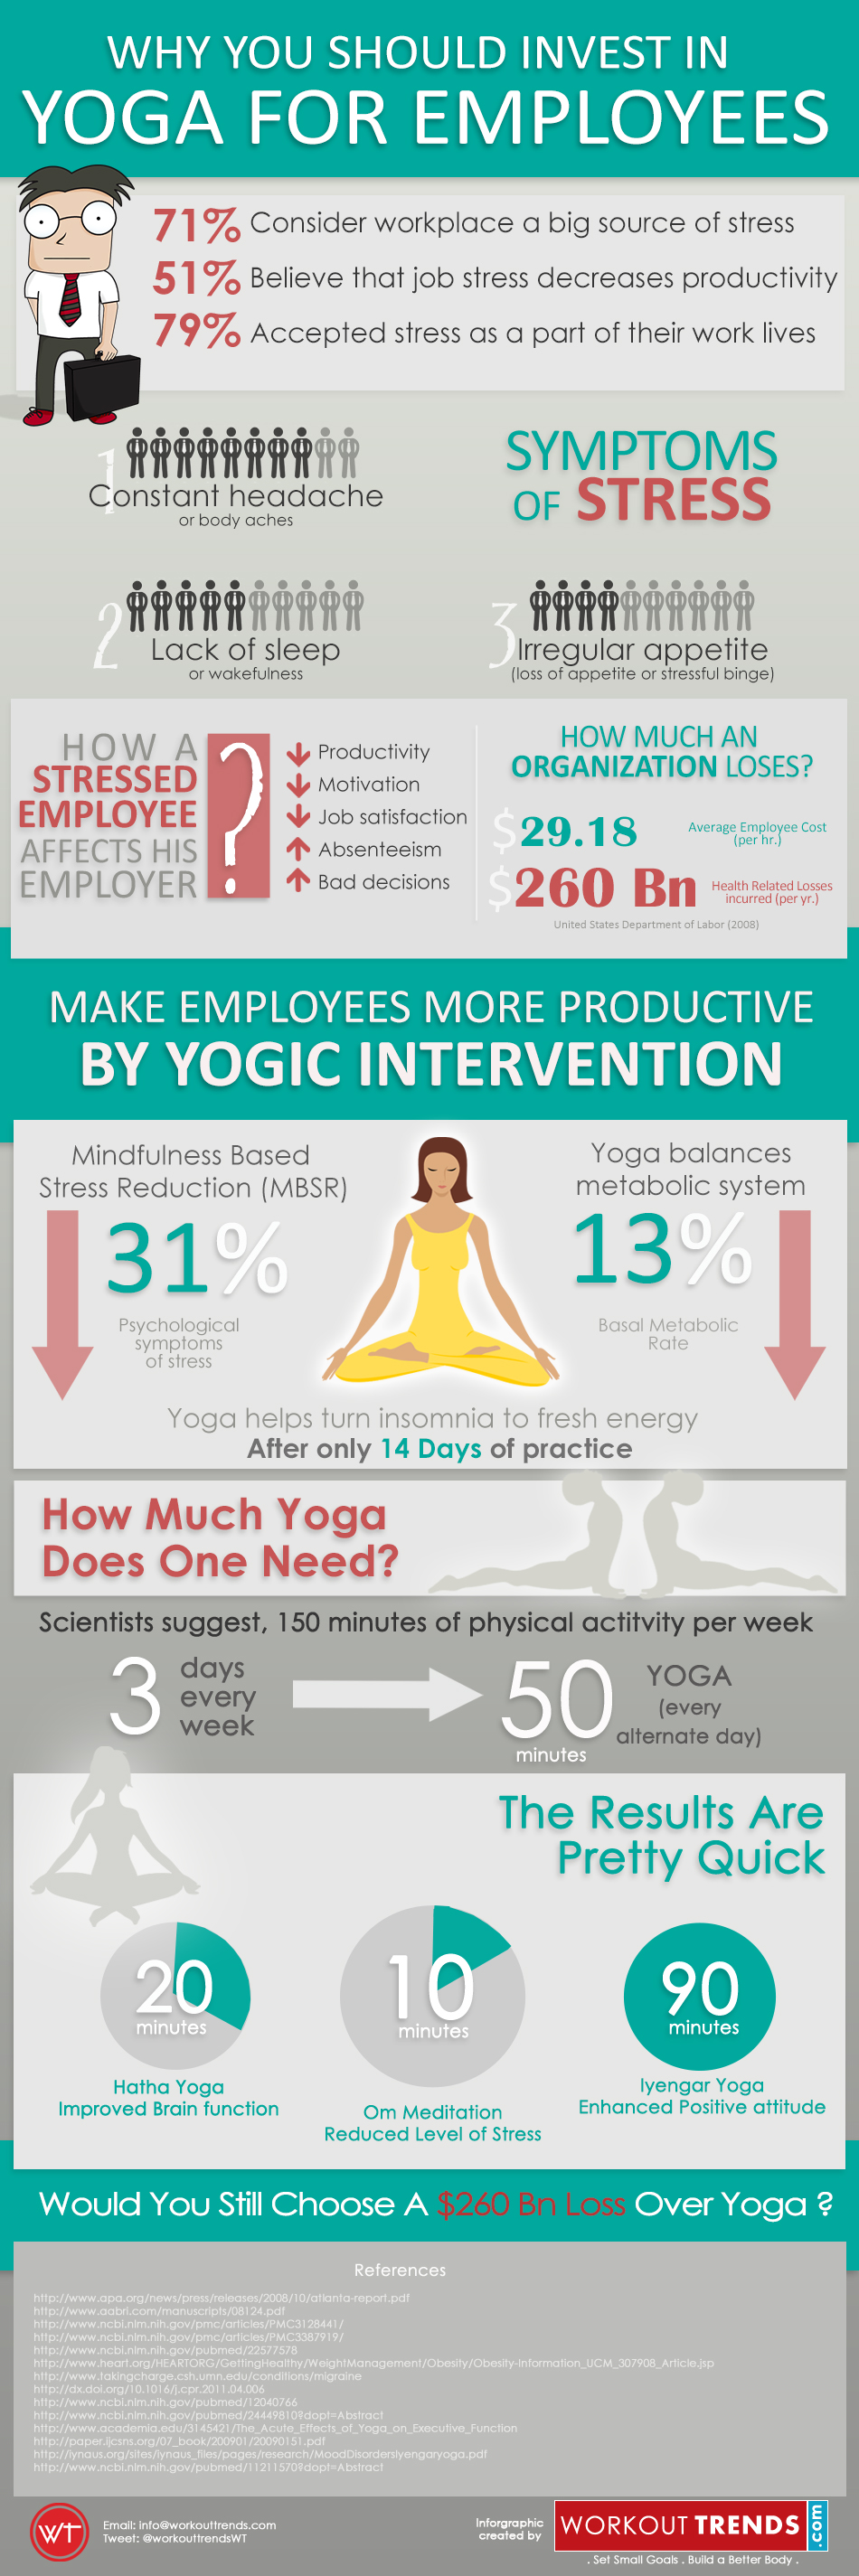 Yoga for employees